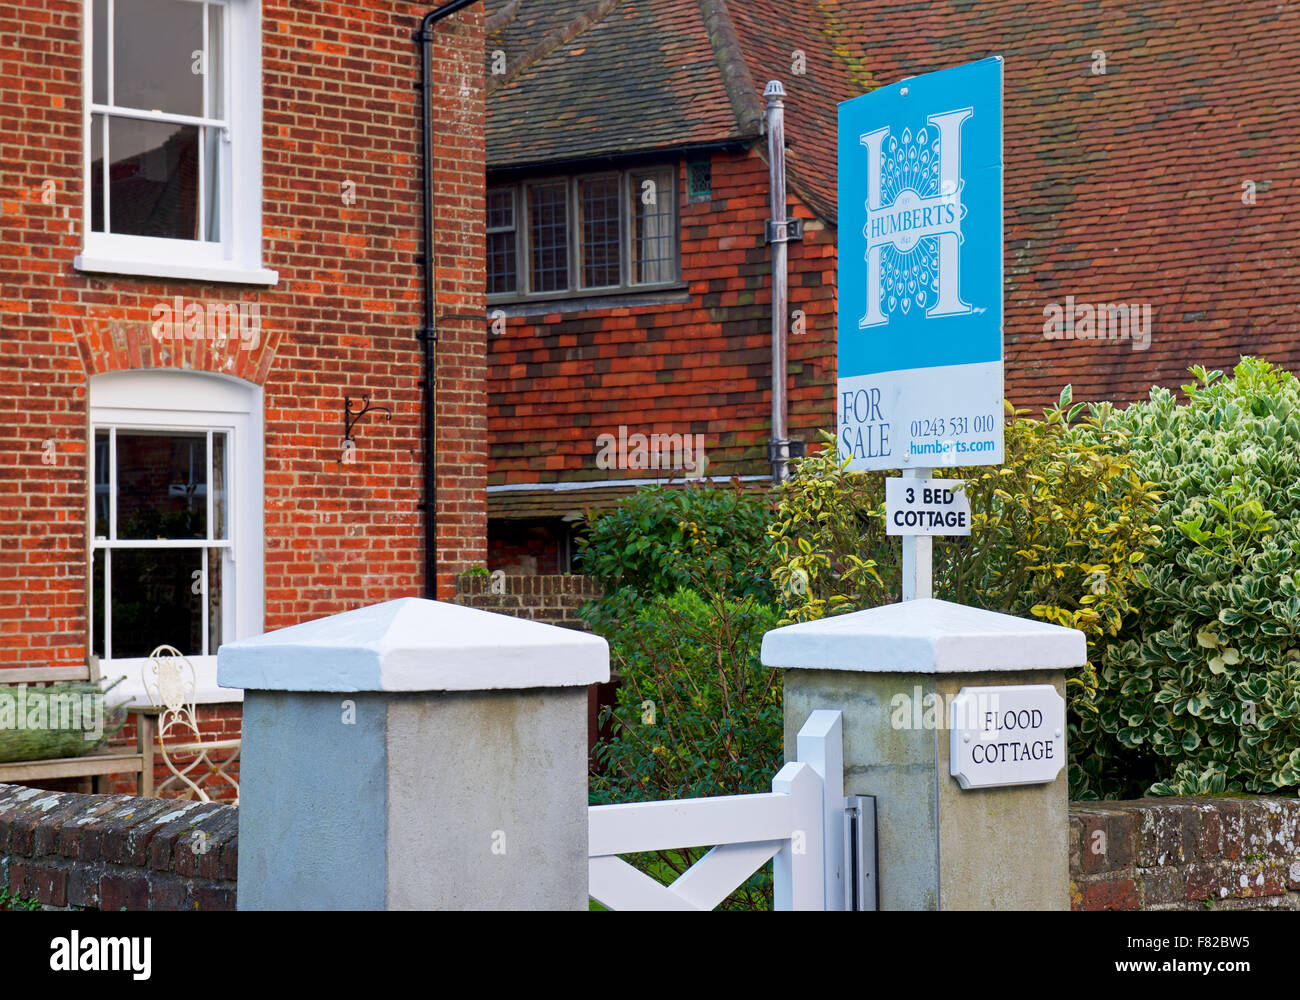 Flood Cottage for sale, in the village of Bosham, Sussex, England UK - Stock Image